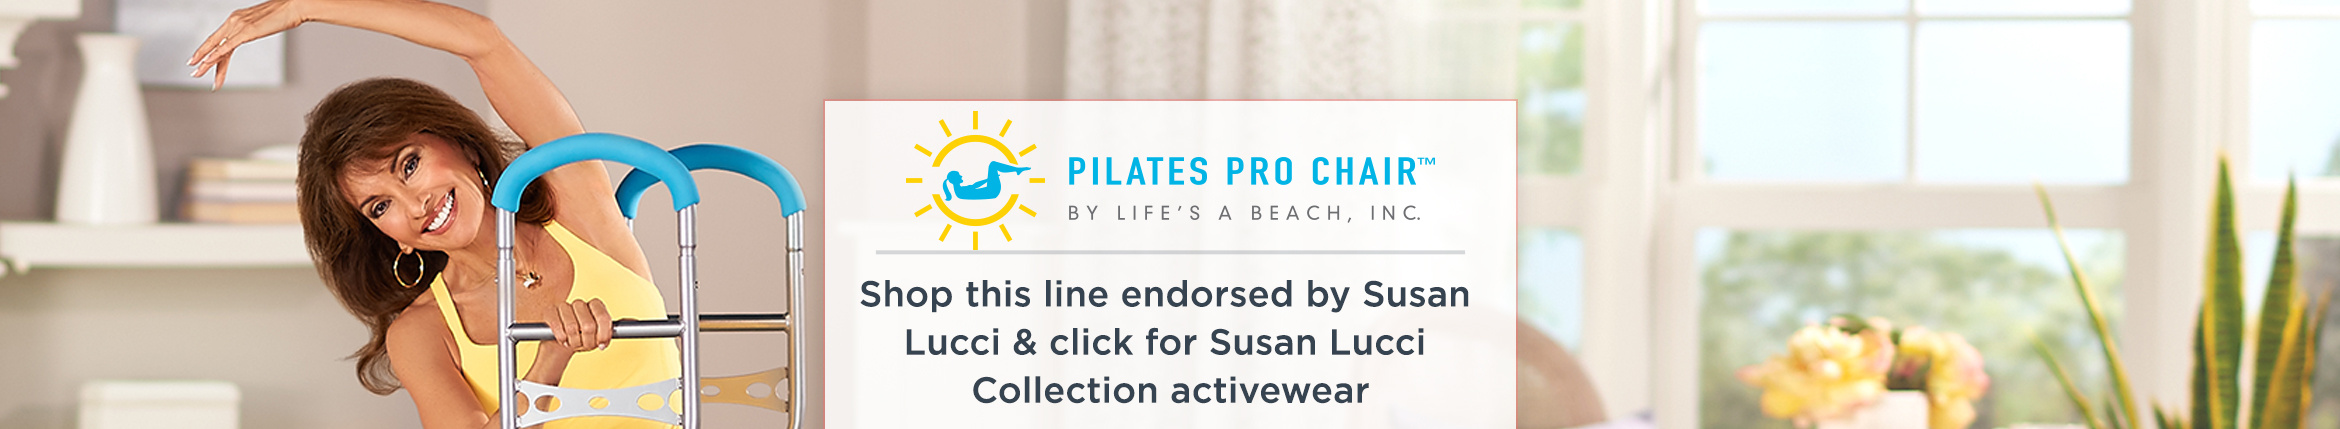 Shop this line endorsed by Susan Lucci & click for Susan Lucci Collection activewear